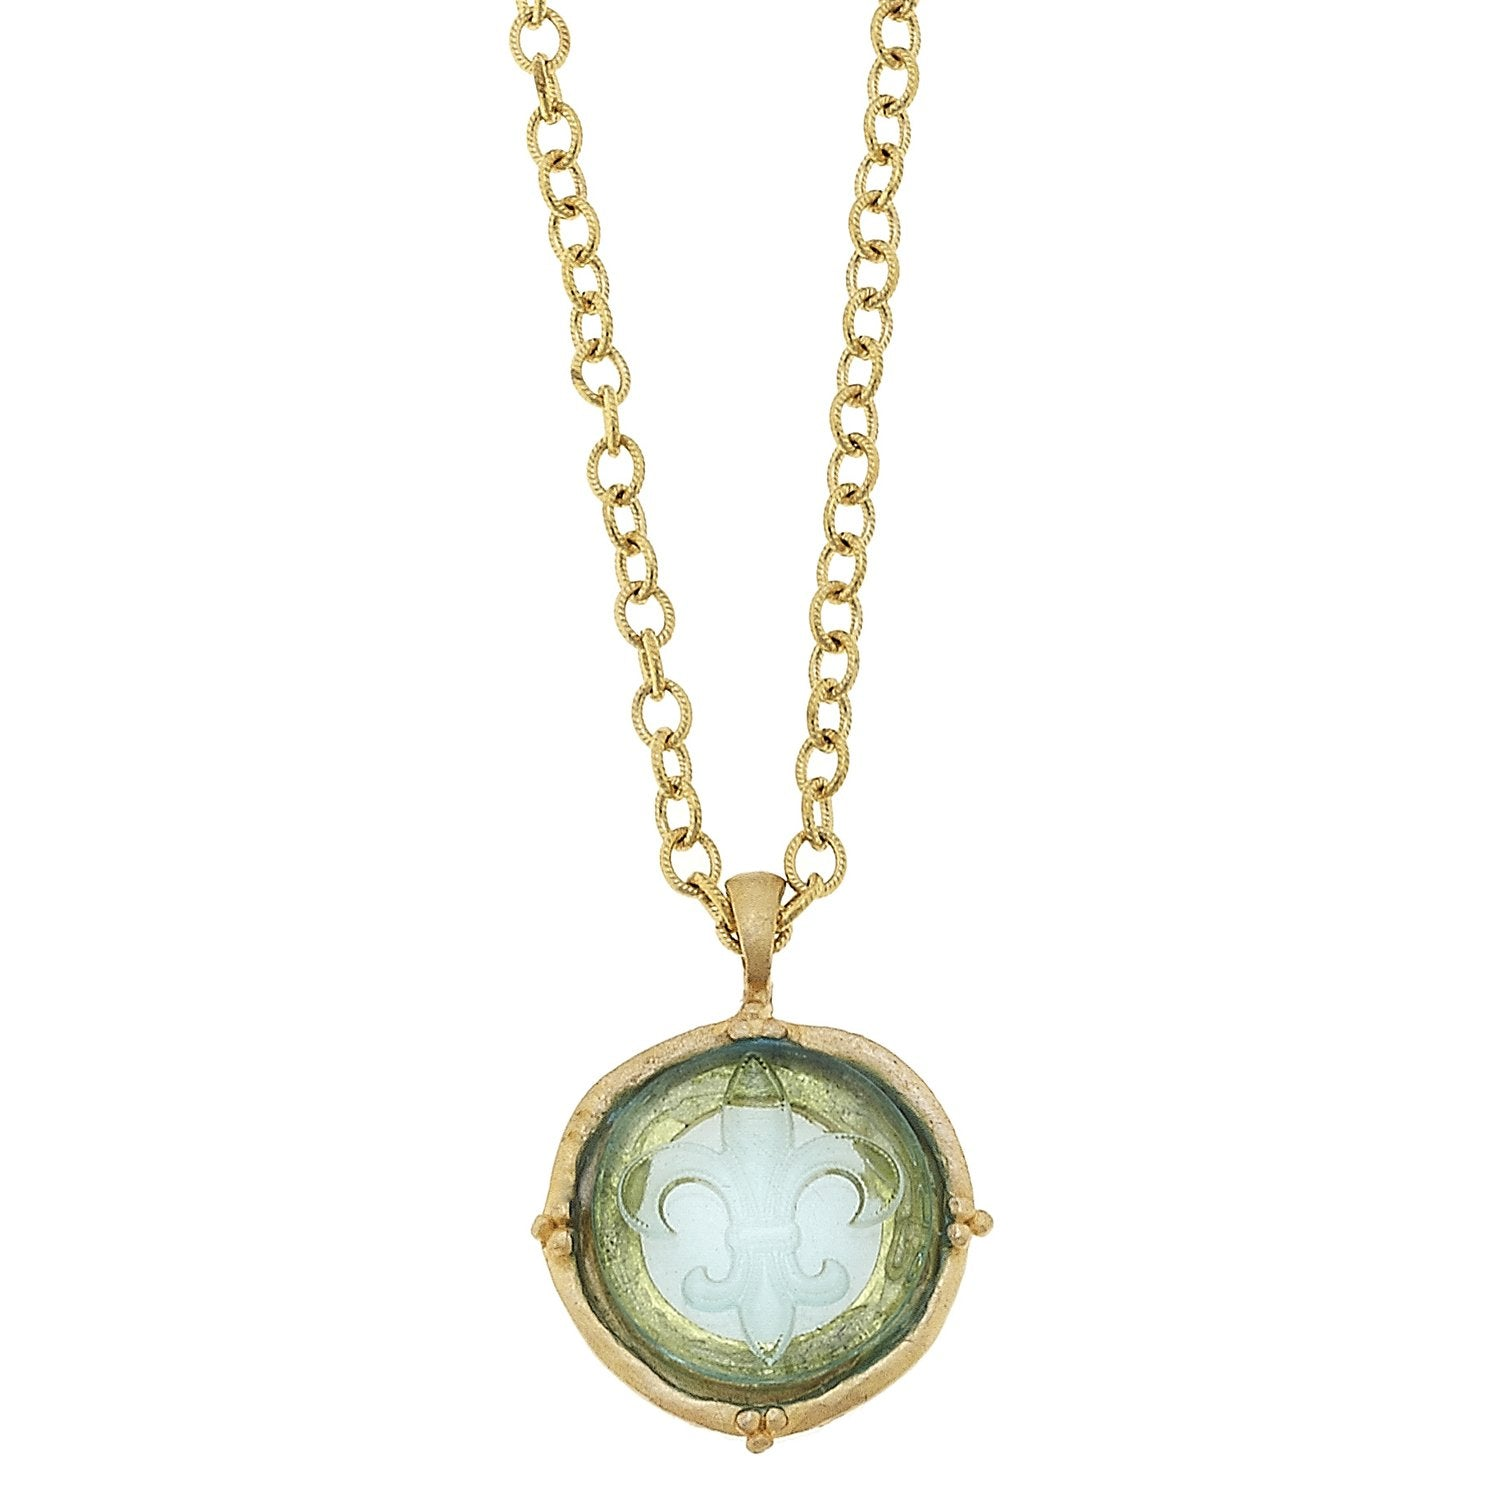 Long Venetian Glass Fleur Intaglio Necklace